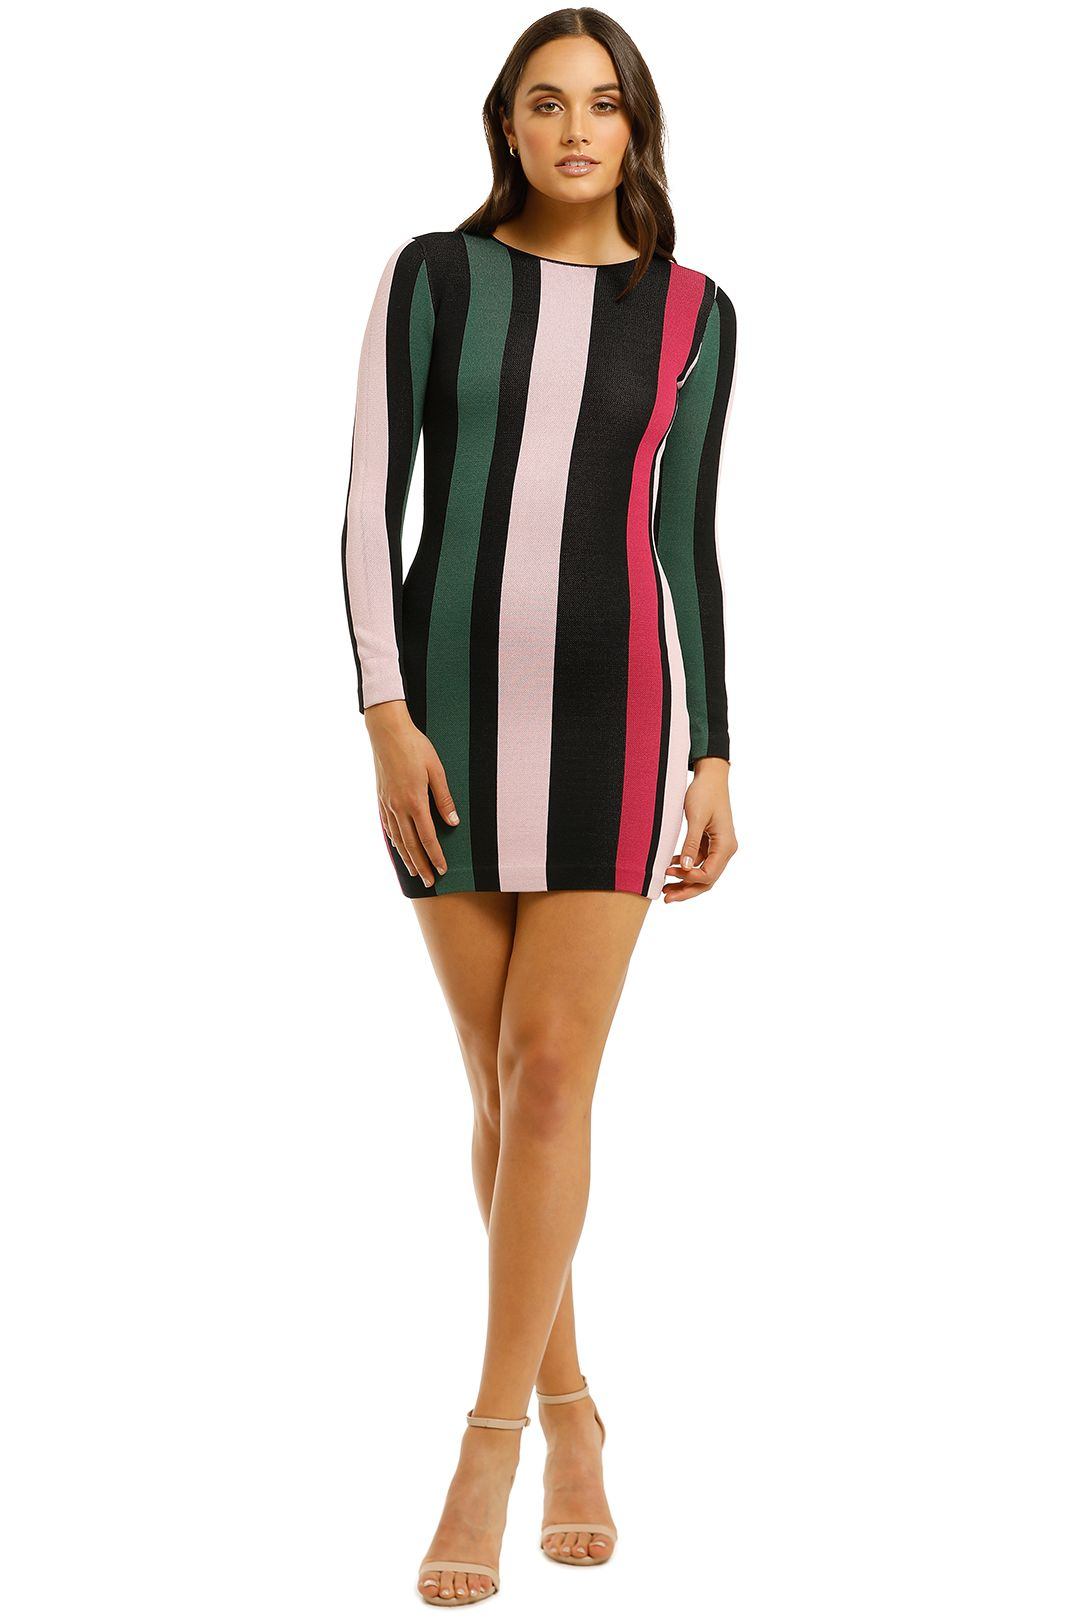 By-Johnny-Pink-Tones-Stripe-Mini-Dress-Front